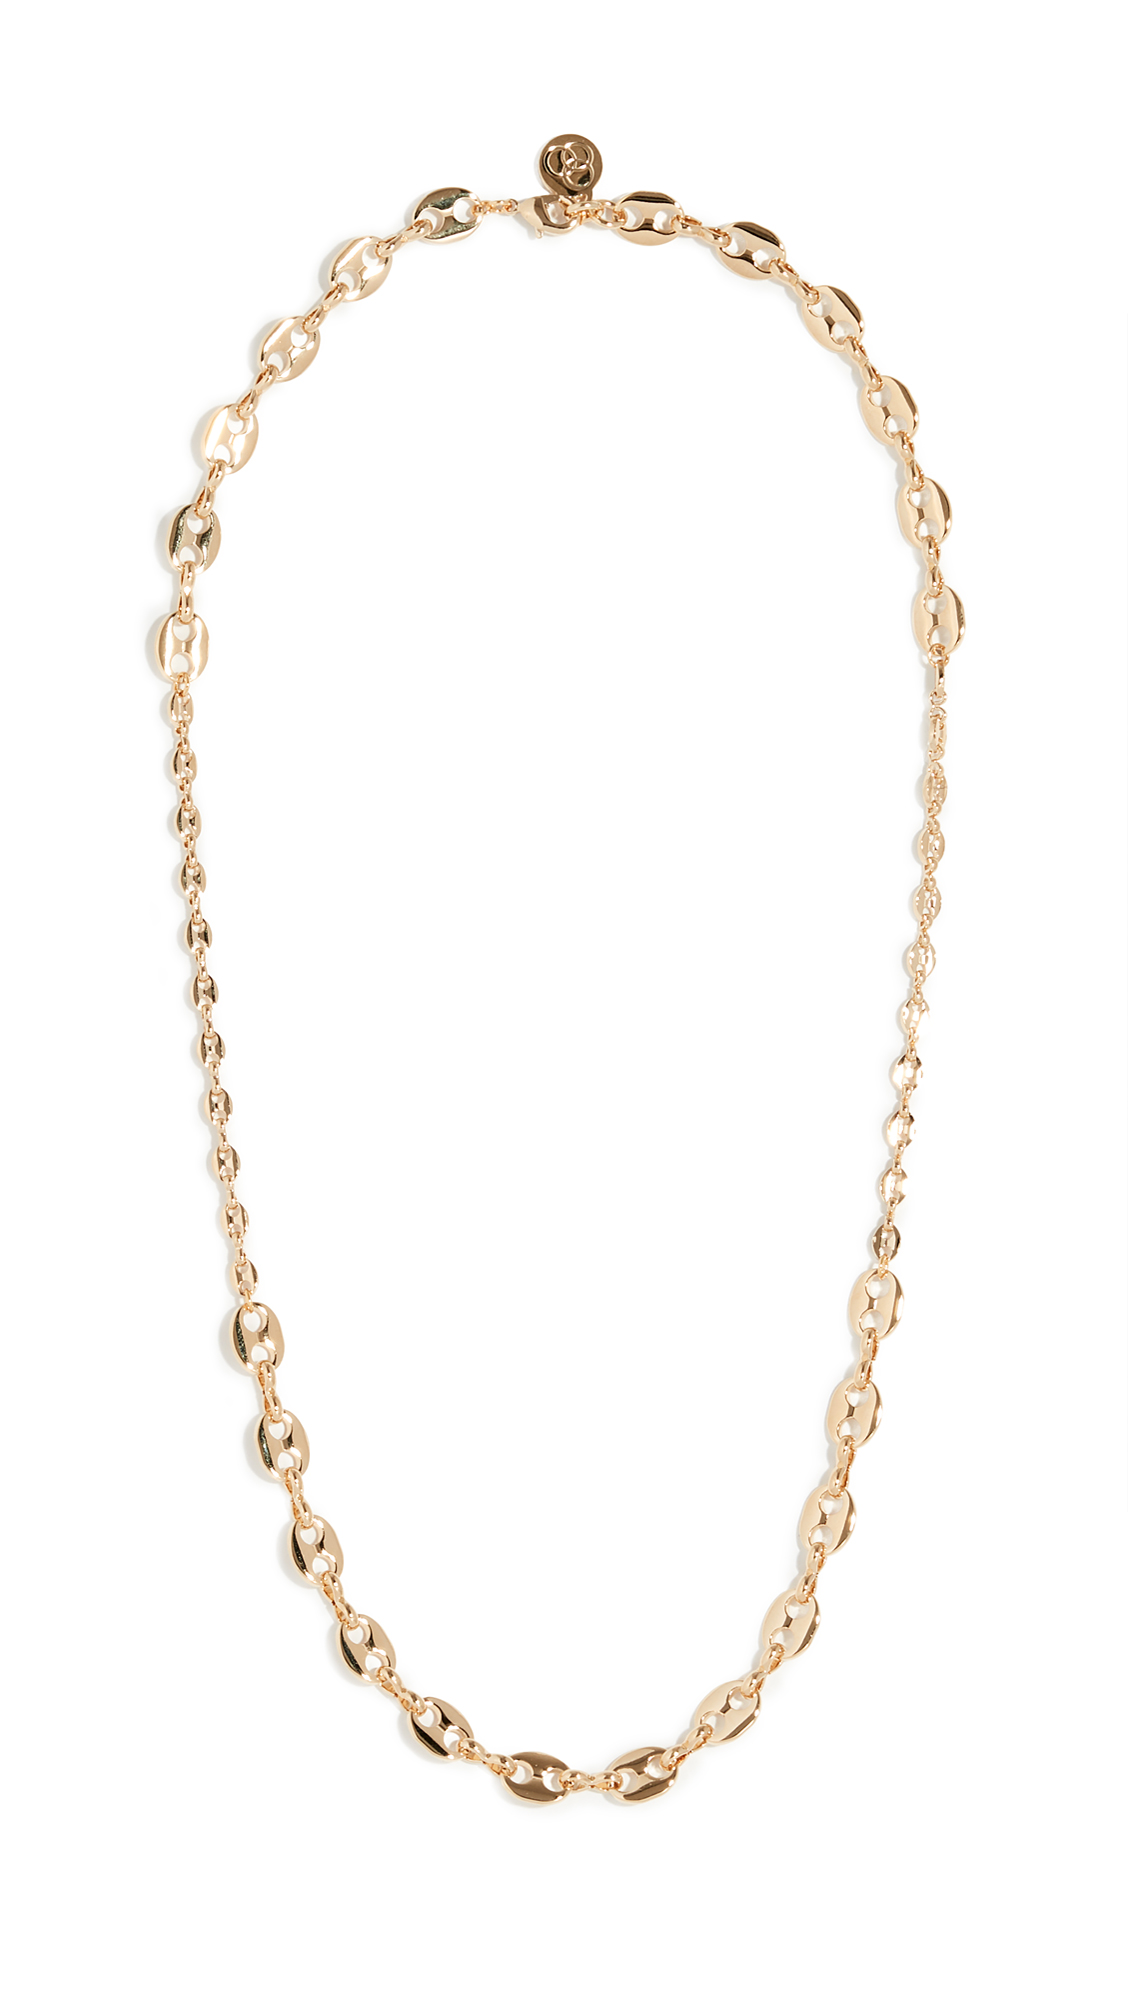 CLOVERPOST Pilot Necklace in Gold